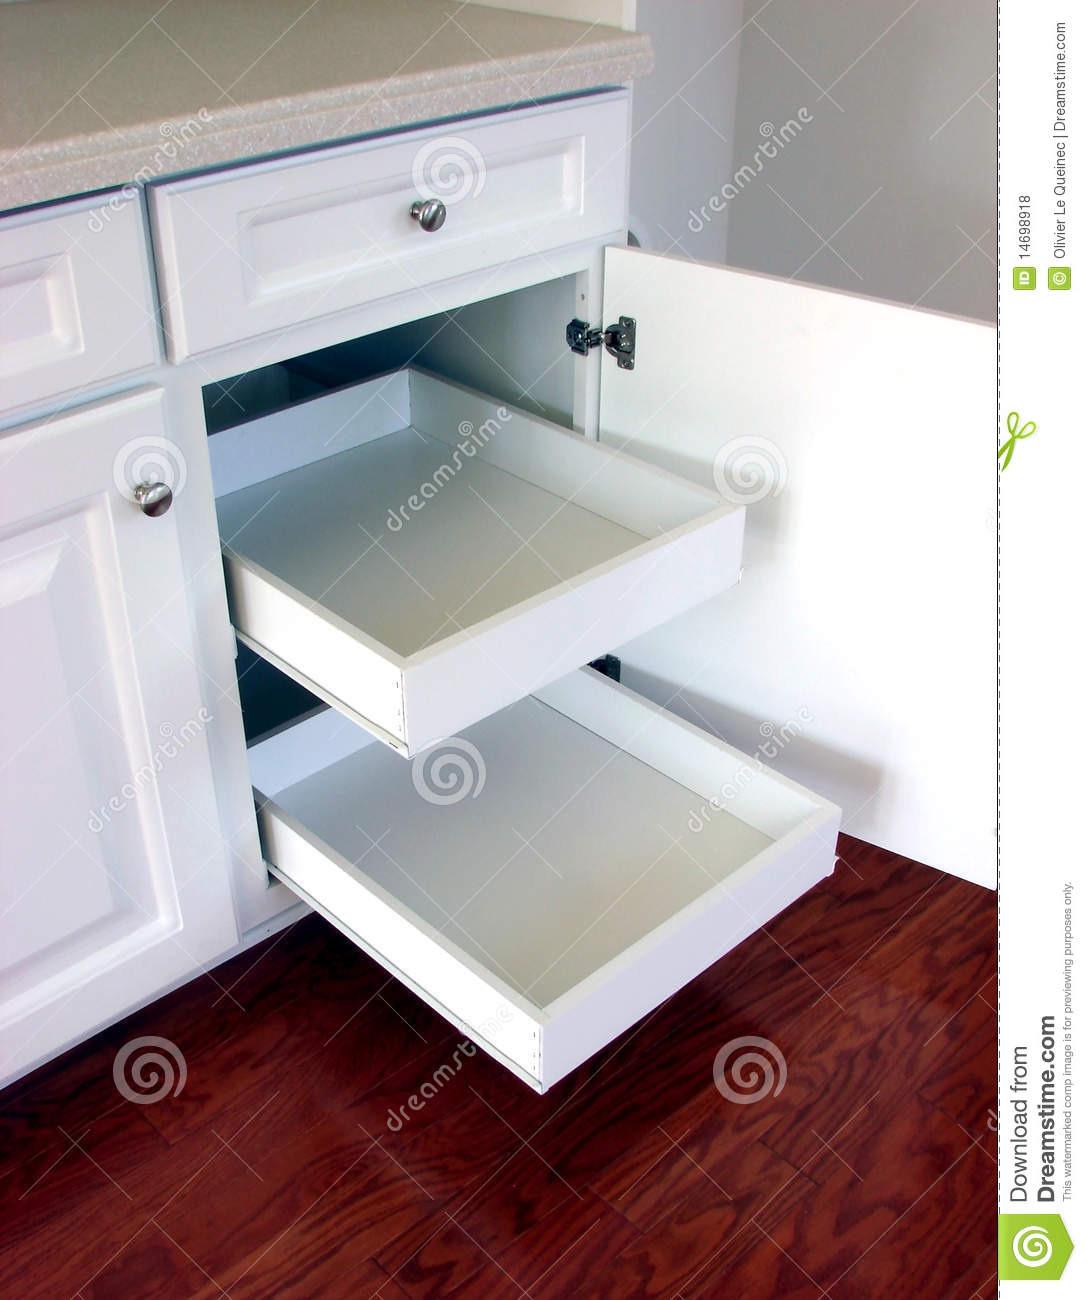 Pull Out Kitchen Drawers Shelves In A Modern House Royalty Free - Kitchen drawers